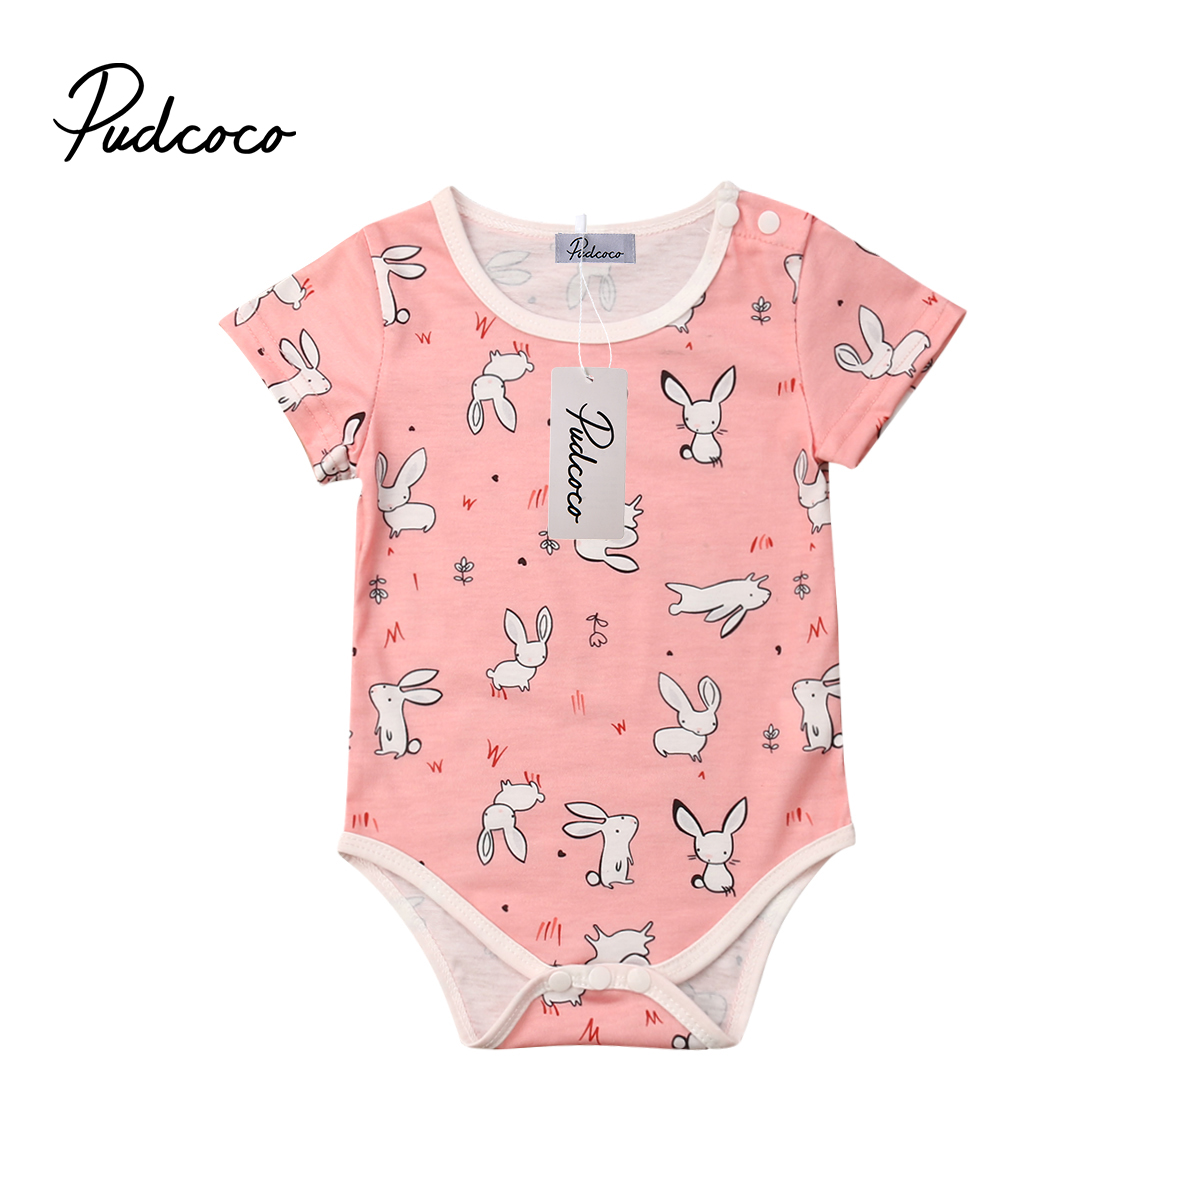 Kids Baby Girl Boy Clothes Deer Print Bodysuit Romper Outfits Sunsuit Costume